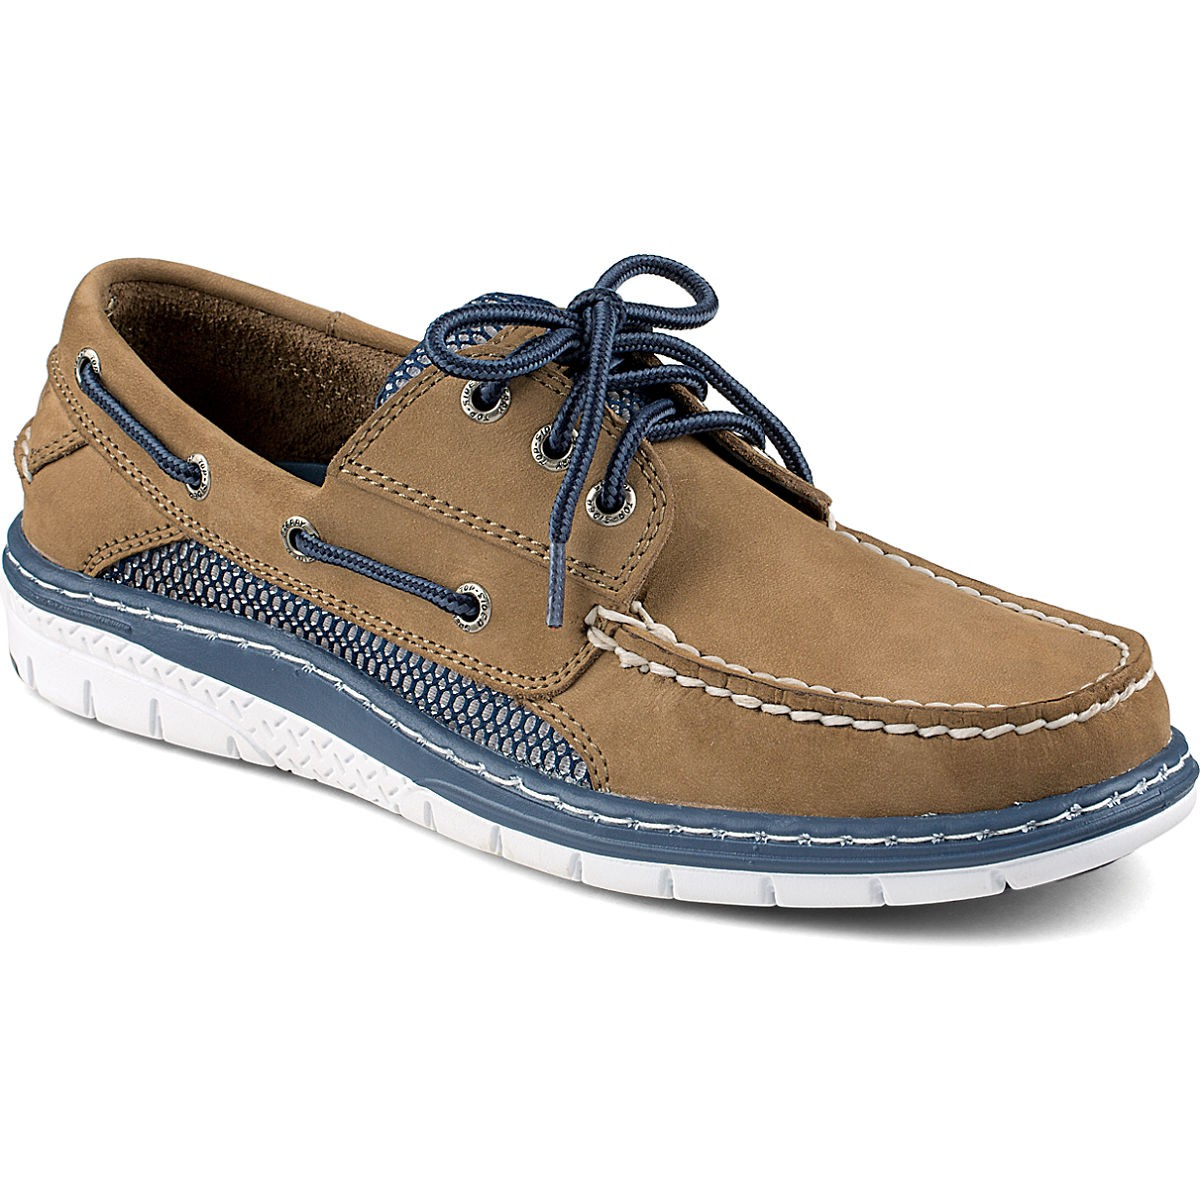 Sperry Rand Womens Shoes